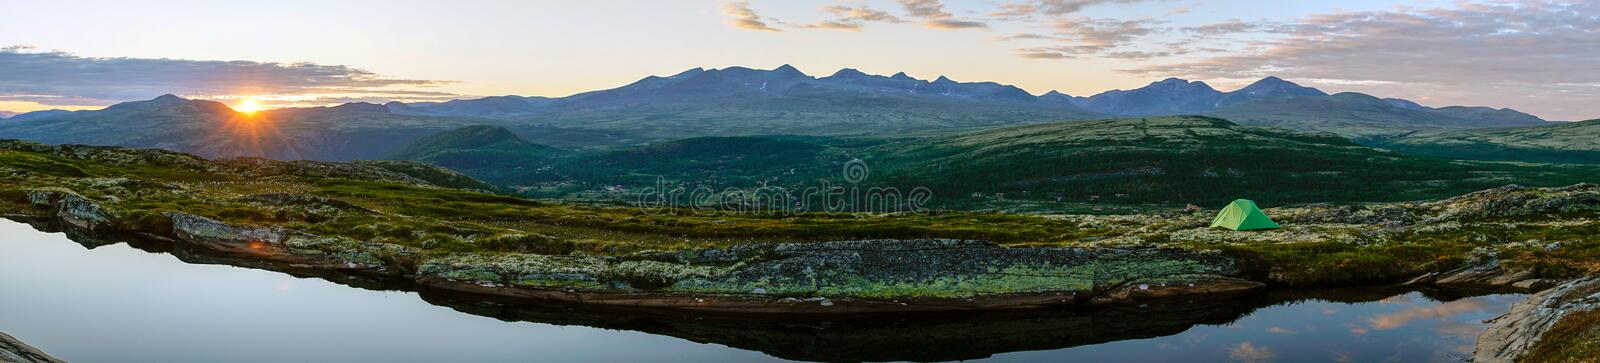 Green tent outdoors in the mountains by lake during sunset hours. Sunset/sunburst and clouds in the background, big panorama. Mountain scenery. Wilderness and royalty free stock images